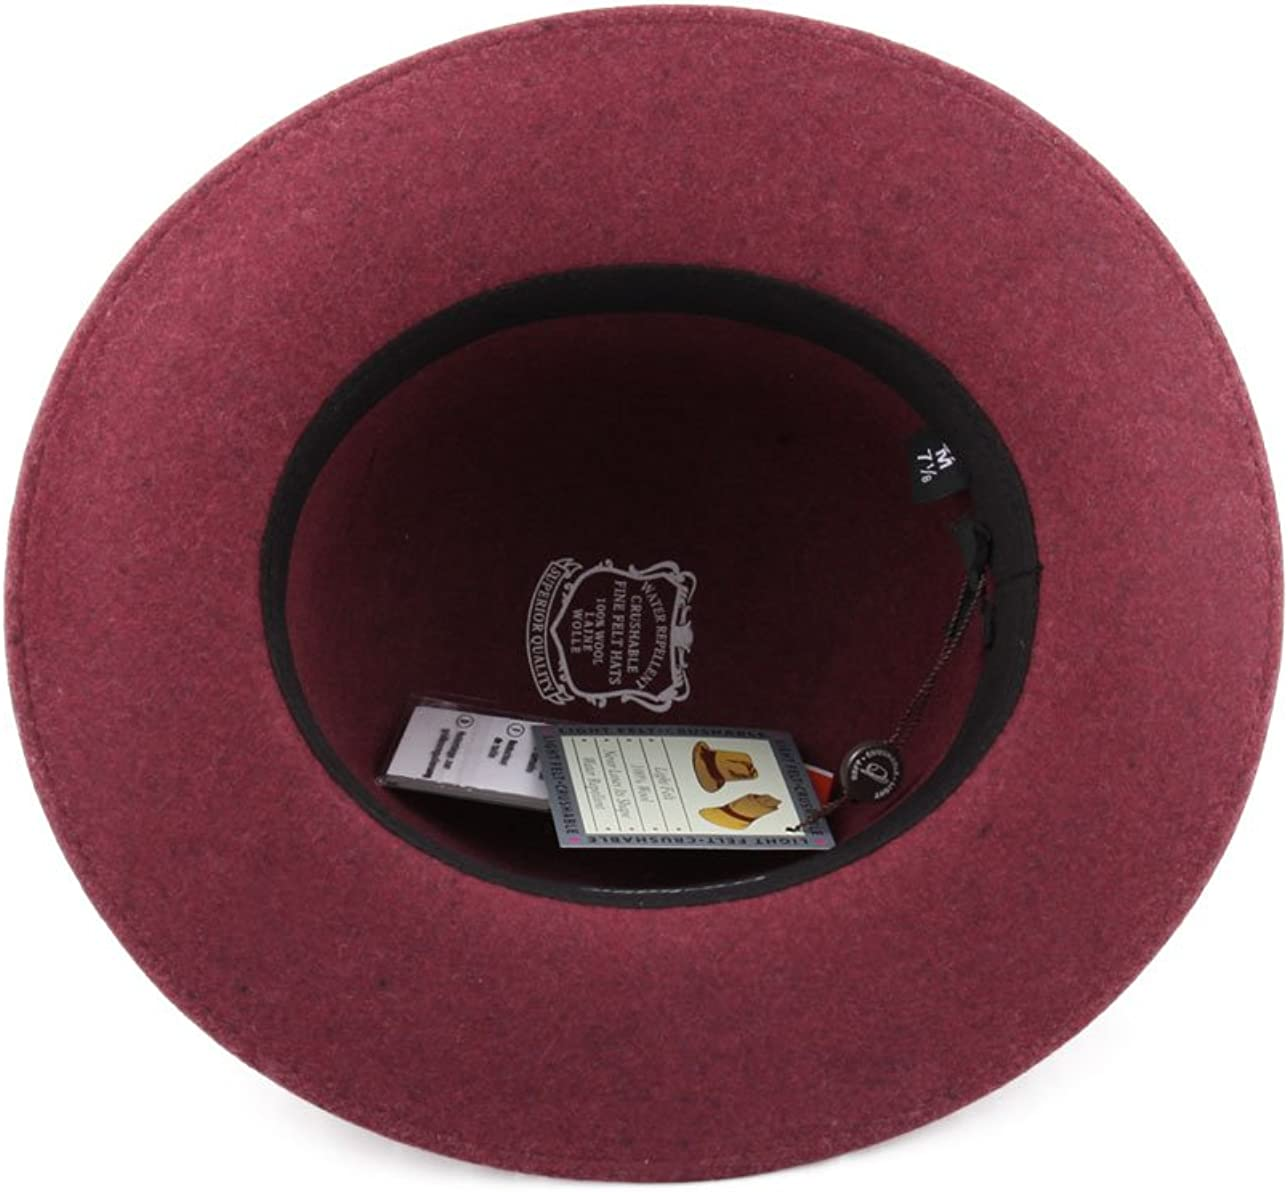 Bowler Hat Wool Felt Packable Water Repellent Wide Brim Nude Po/ète Classic Italy